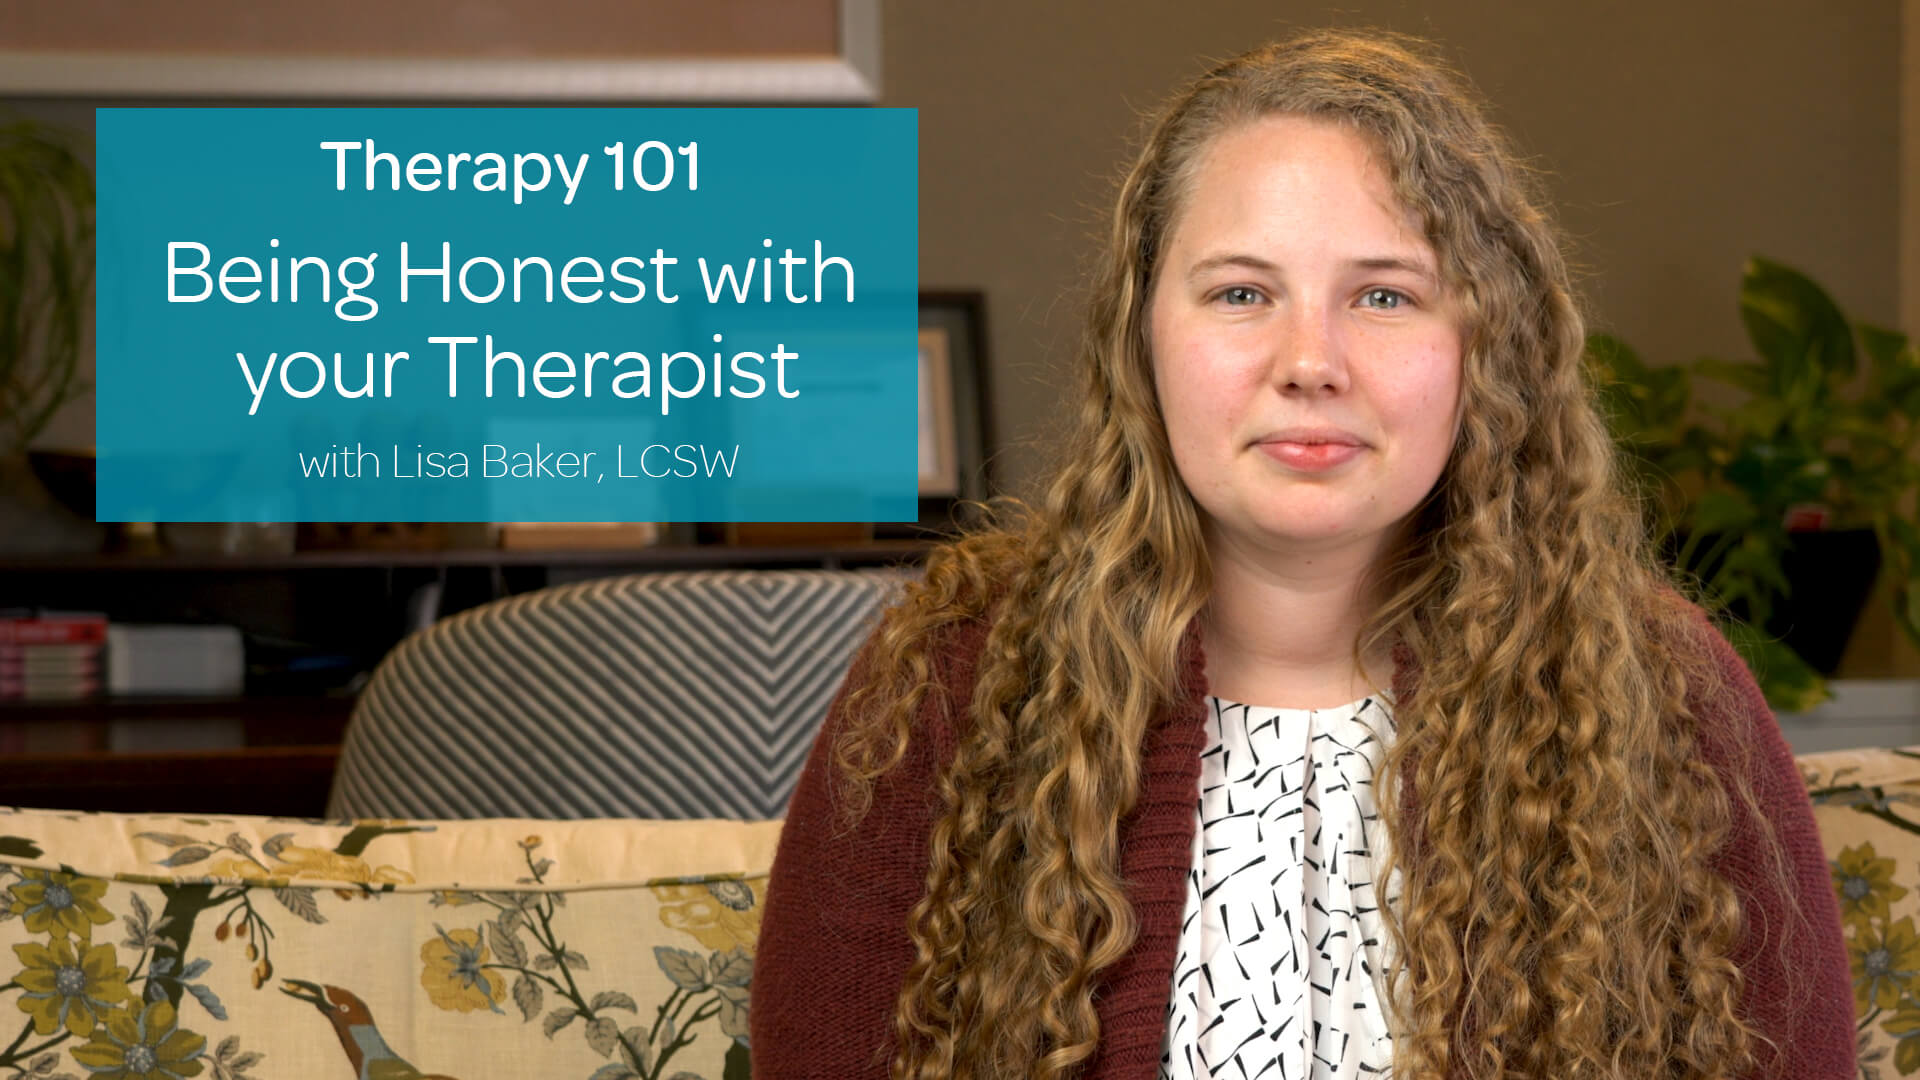 Being Honest with your Therapist